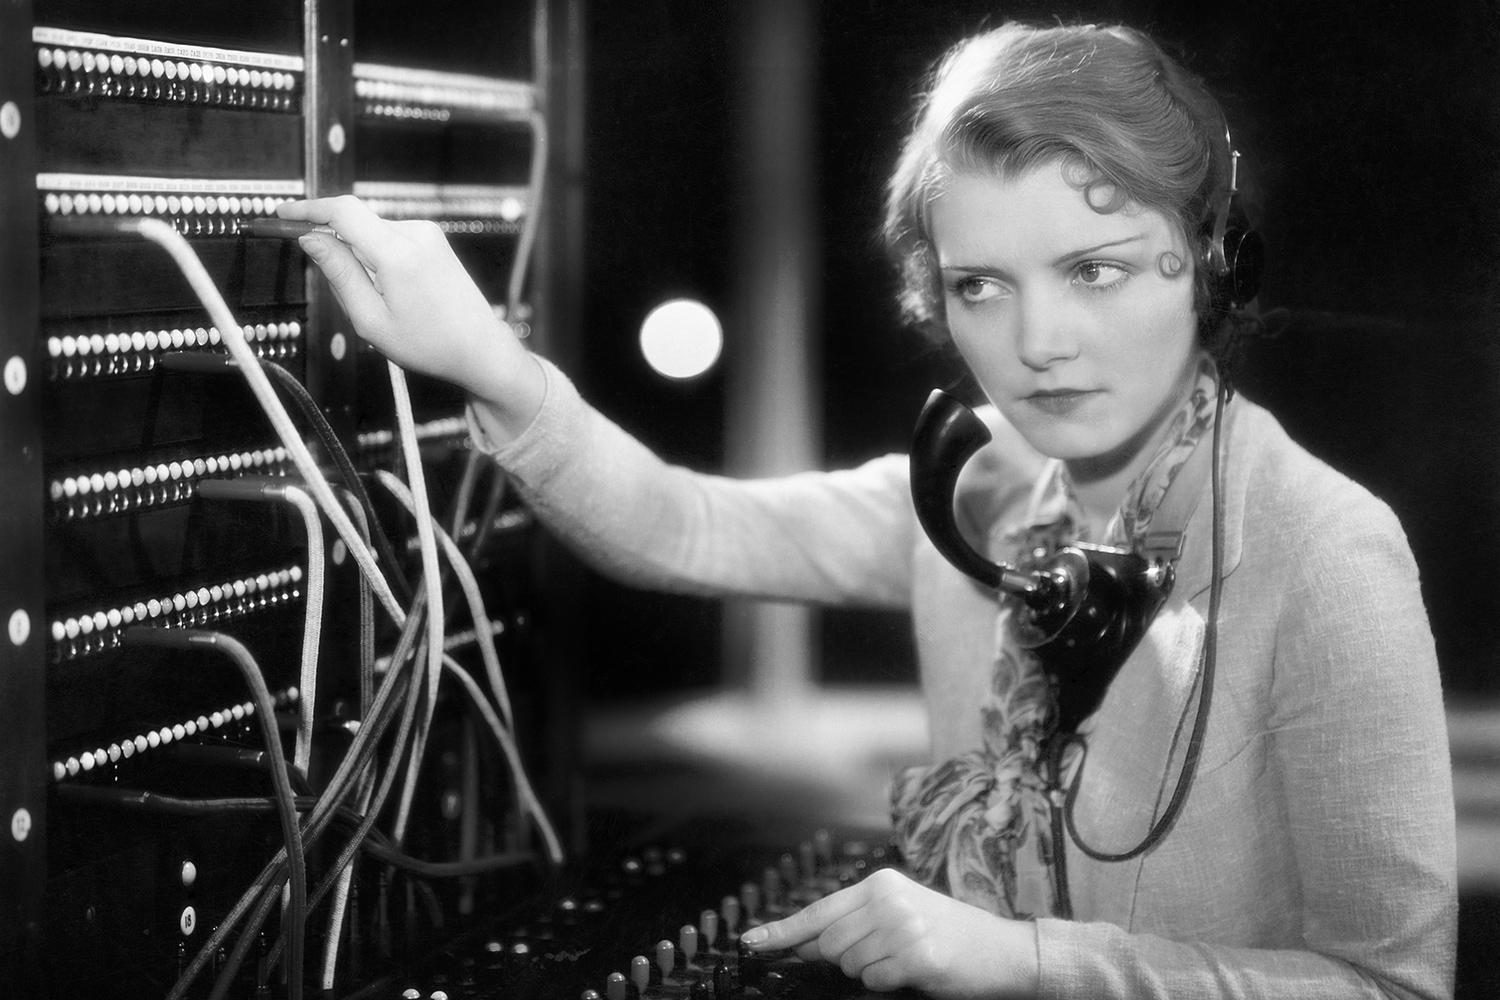 Is your telephone system still running in the 20th century? Call DunnCo, we'll answer with modern solutions.